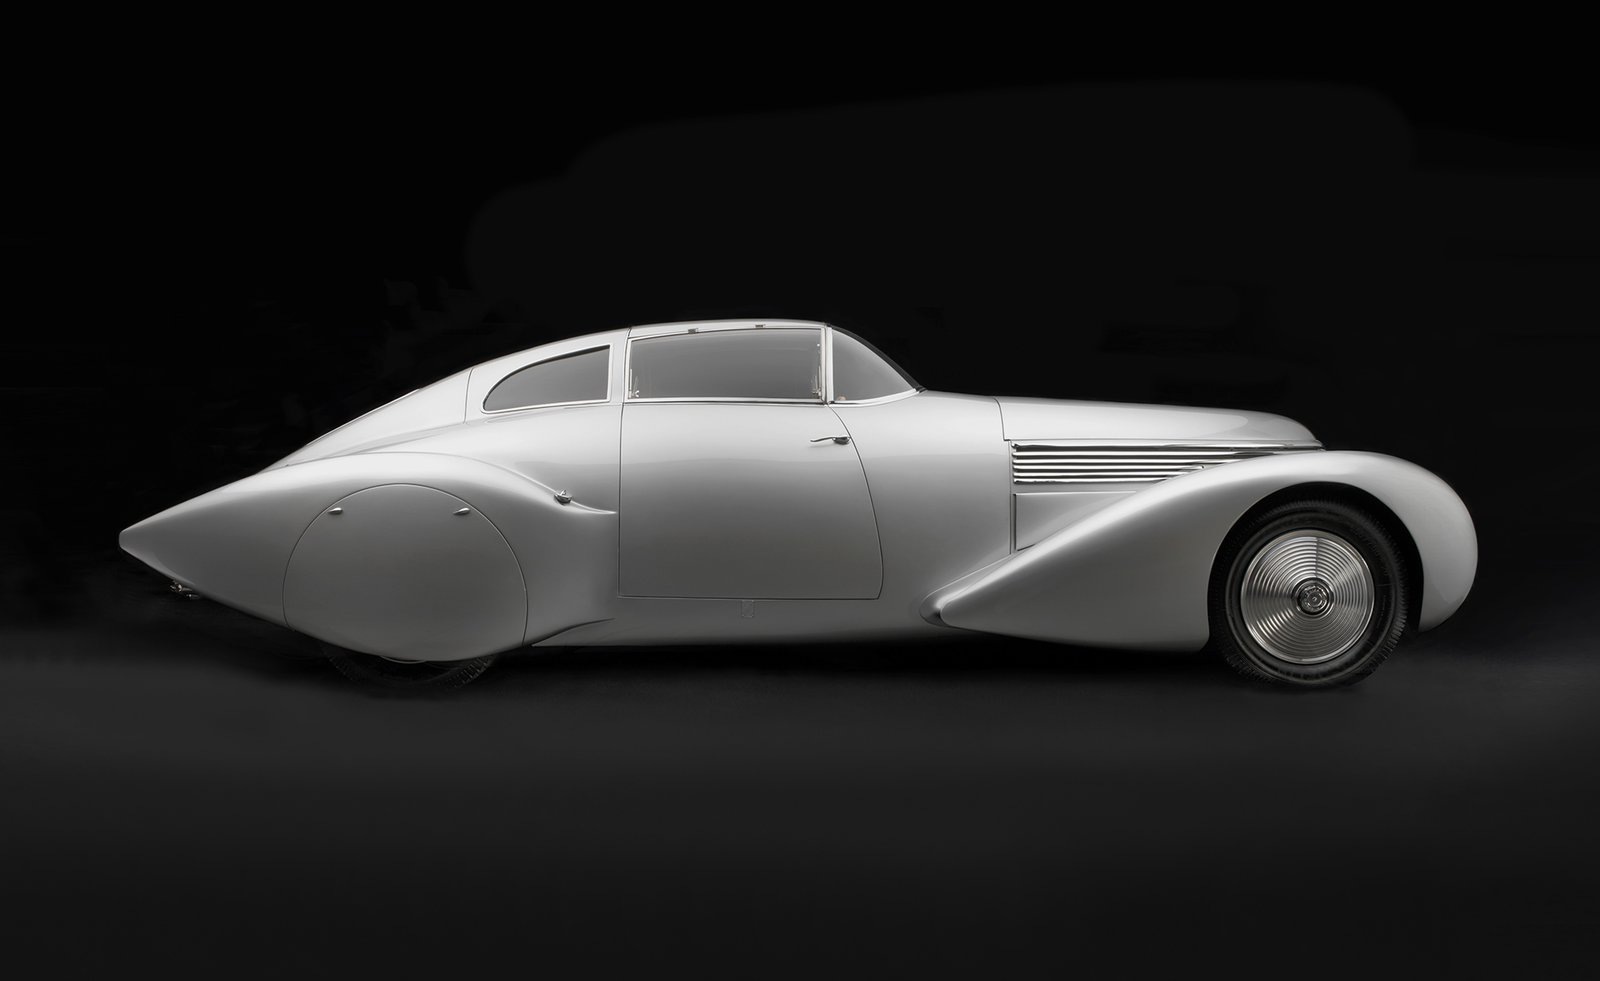 Photo 1 of 15 in Examining the Architecture of the Art Deco Automobile